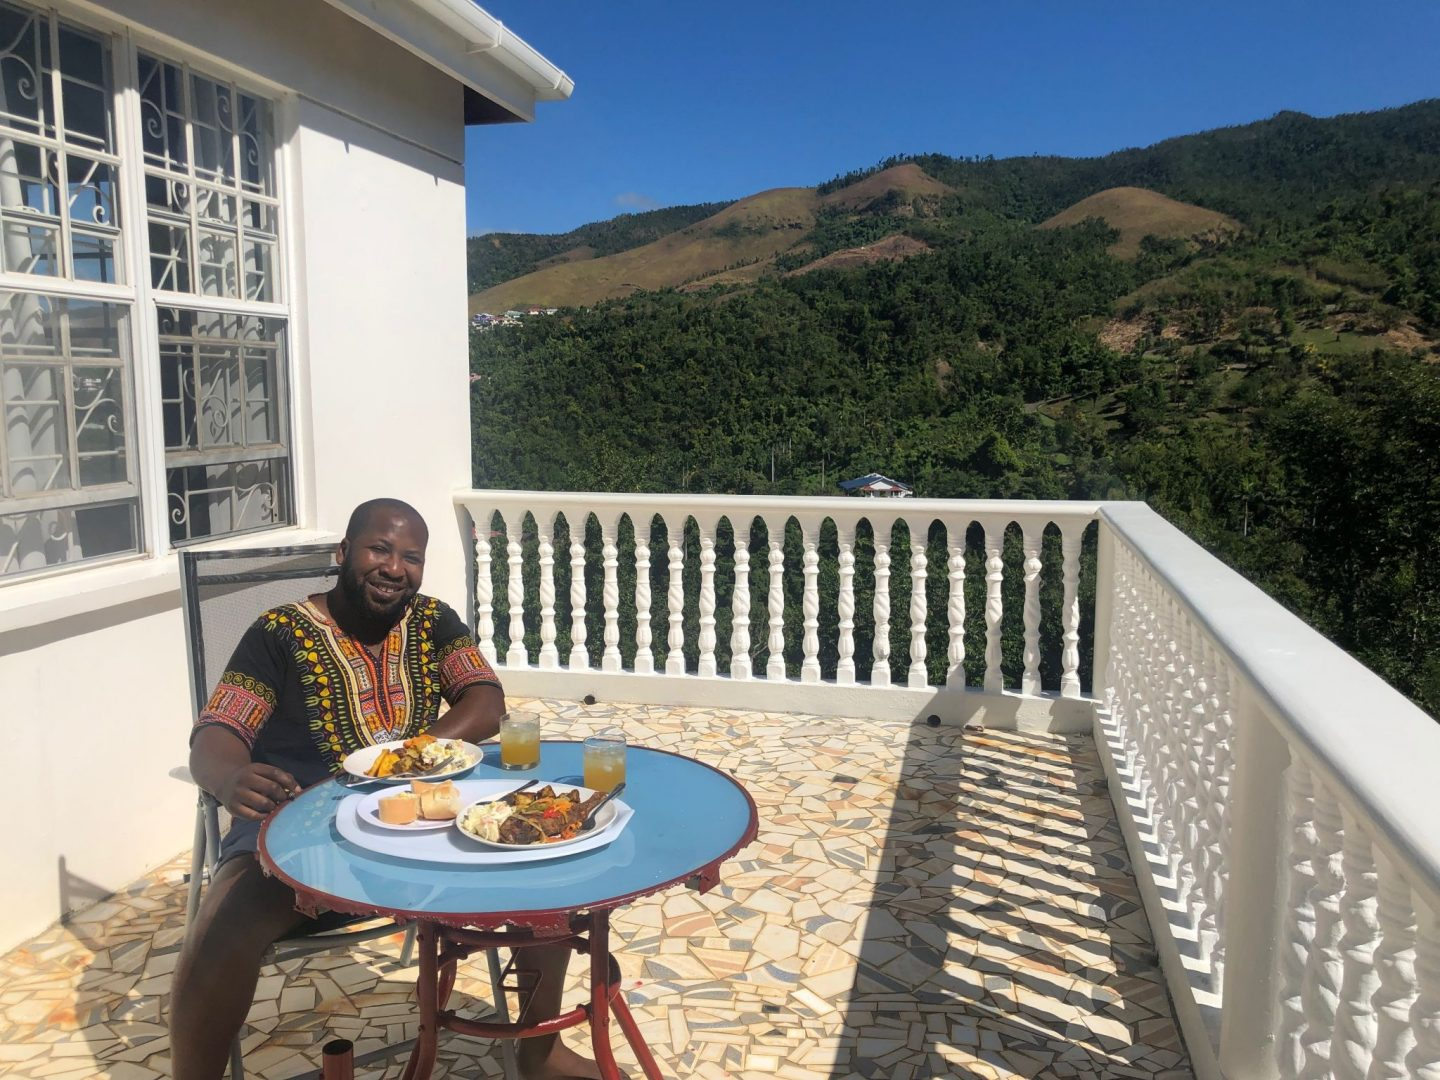 Eating some tasty Dominican dishes on the Veranda